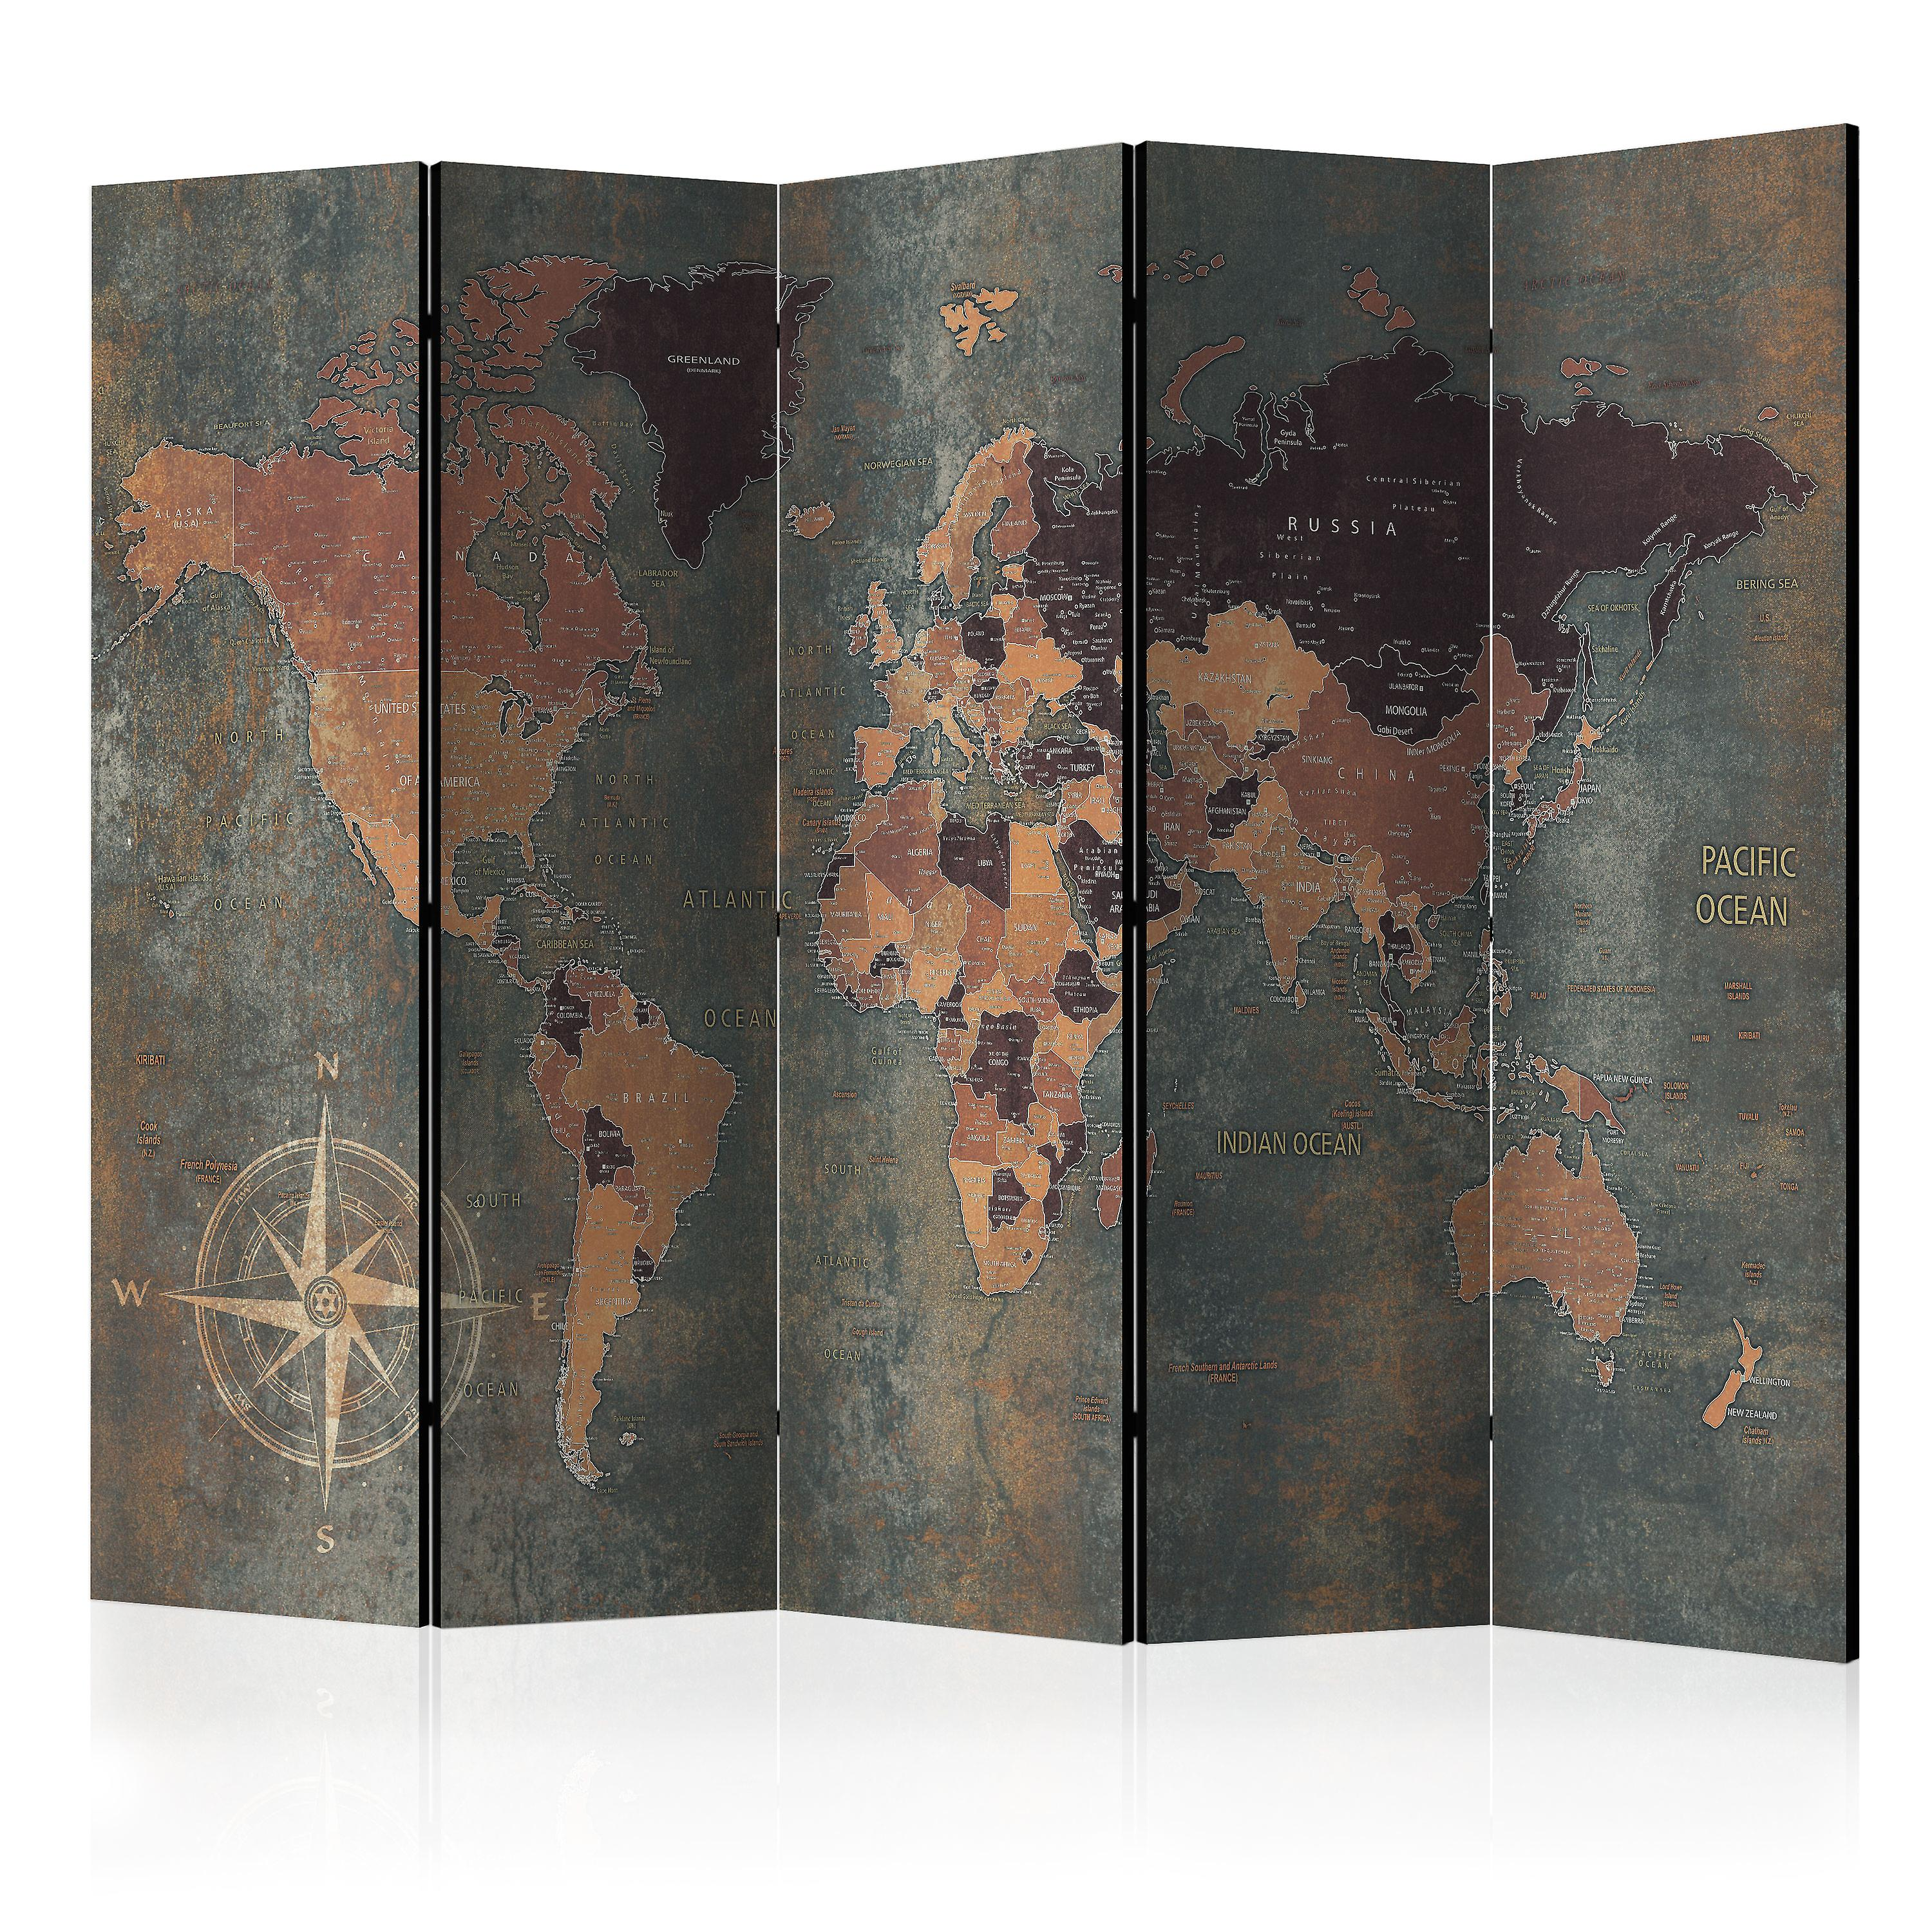 Paravent 5 volets - Room divider – Map in marrons and griss